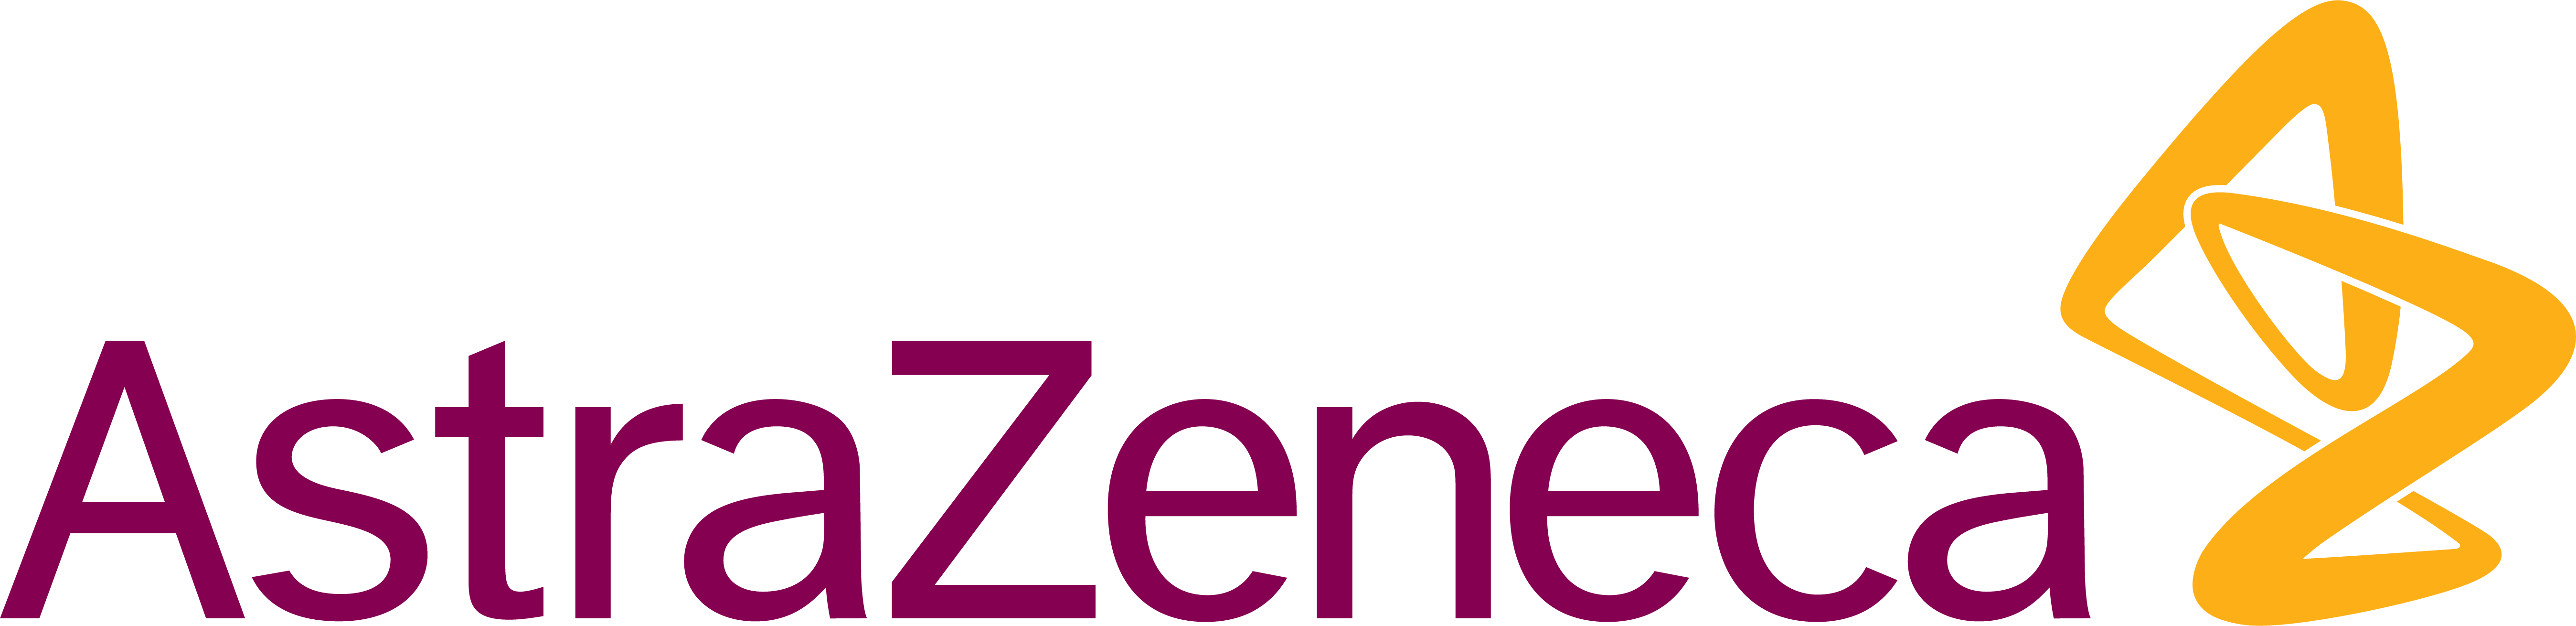 Astra Zeneca logo